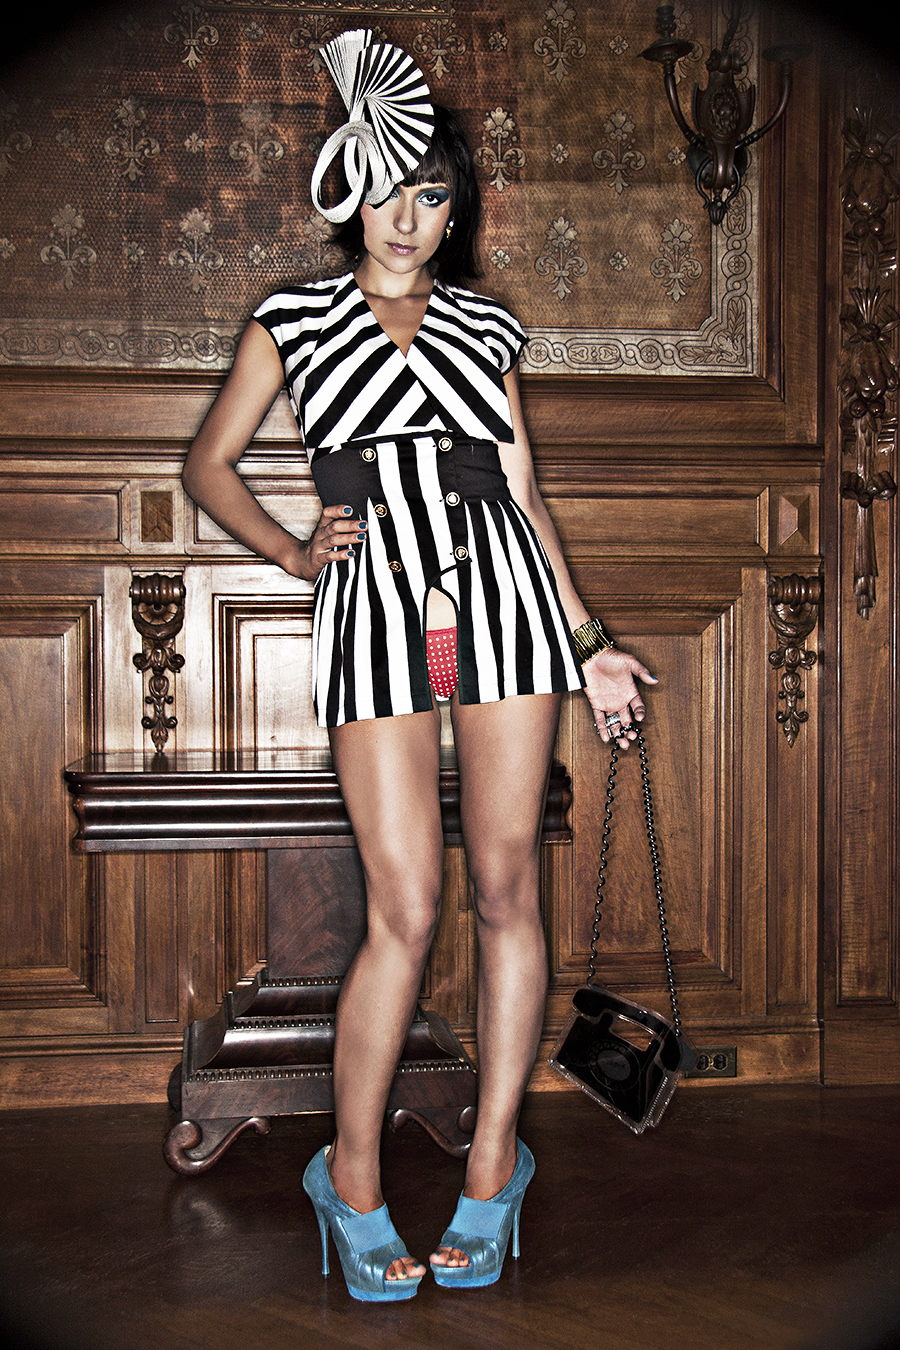 Tony_Ward_fashion_photography_German_Cosmospolitan_stripes_blue_heels_handbags_legs